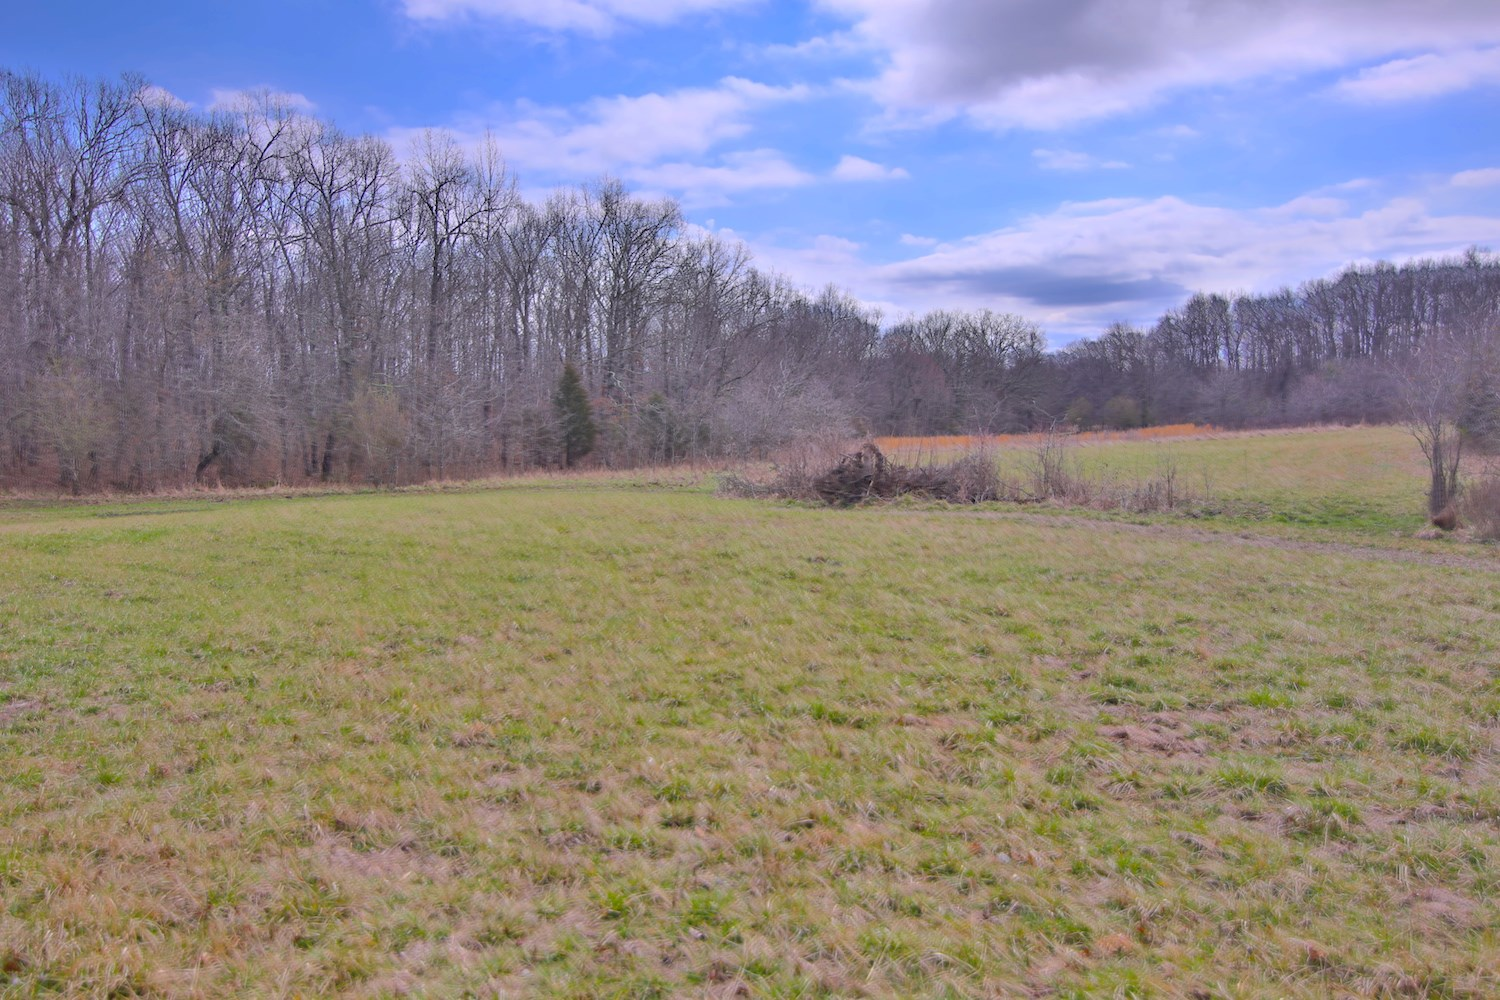 Hunting / Farming Acreage For Sale in Oregon County, Missour